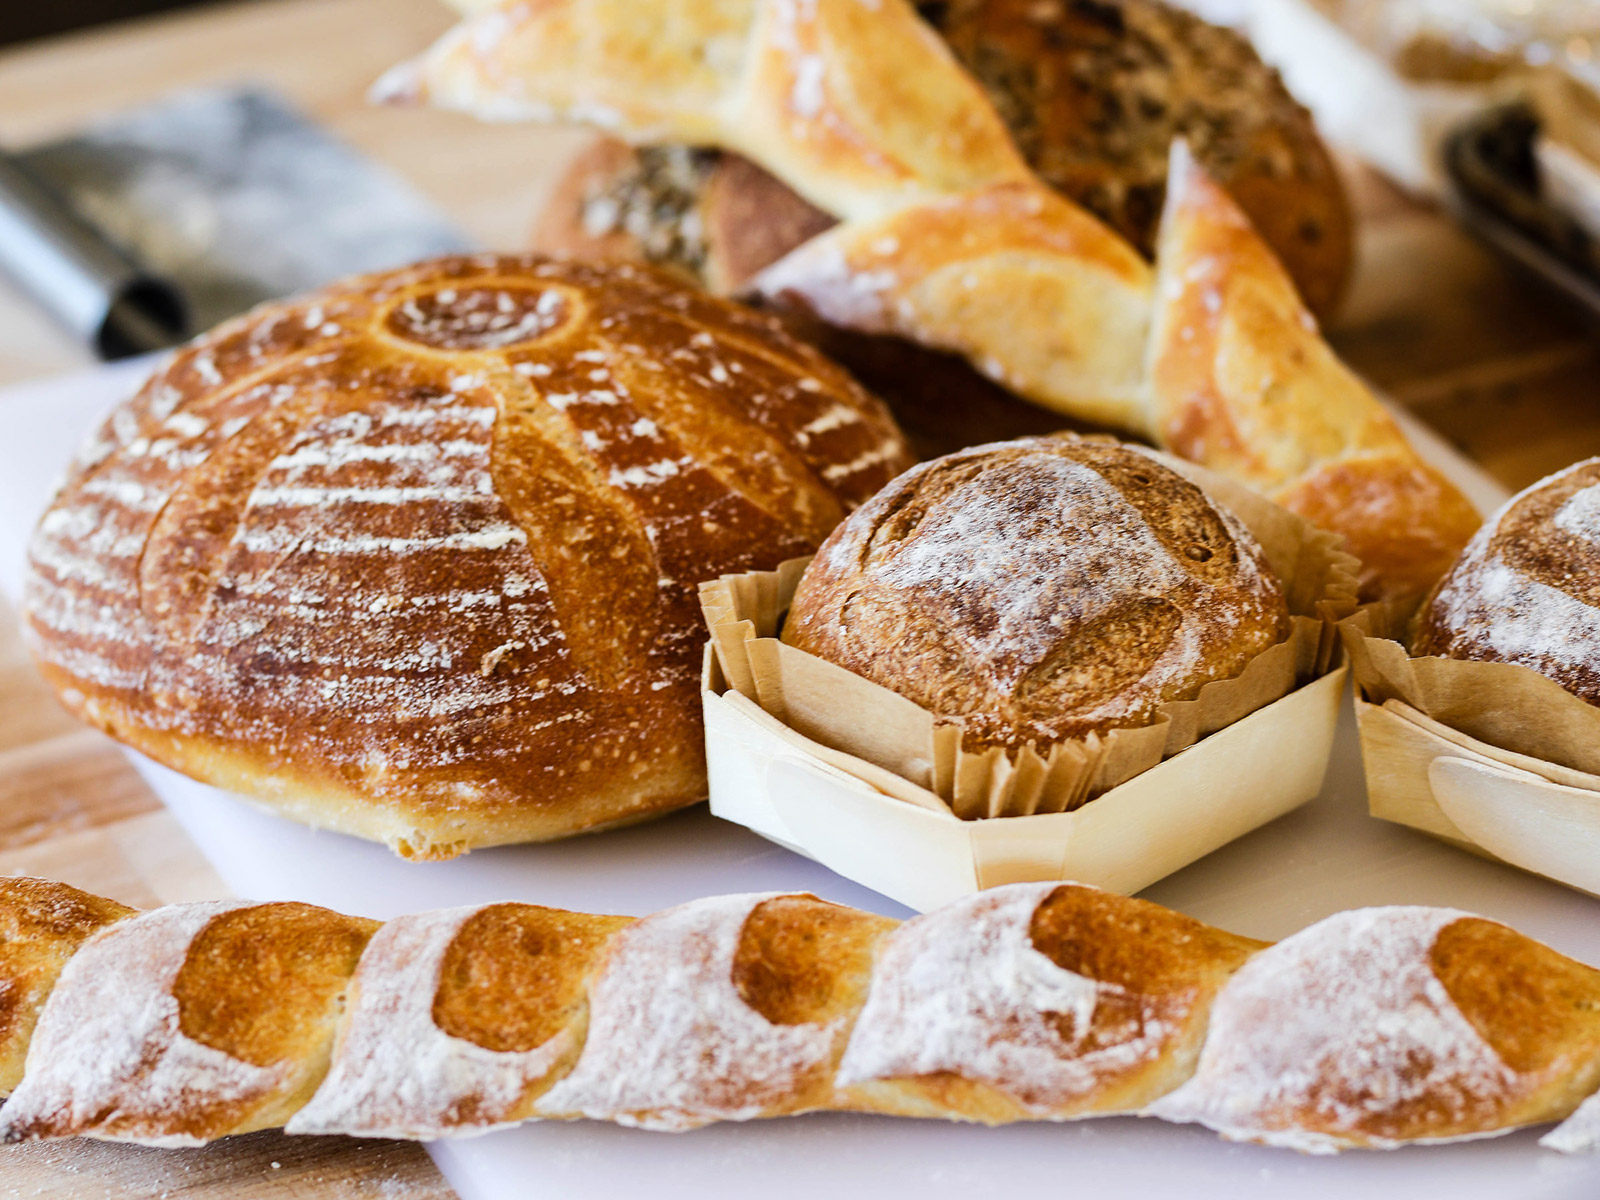 baked goods from flower and bread